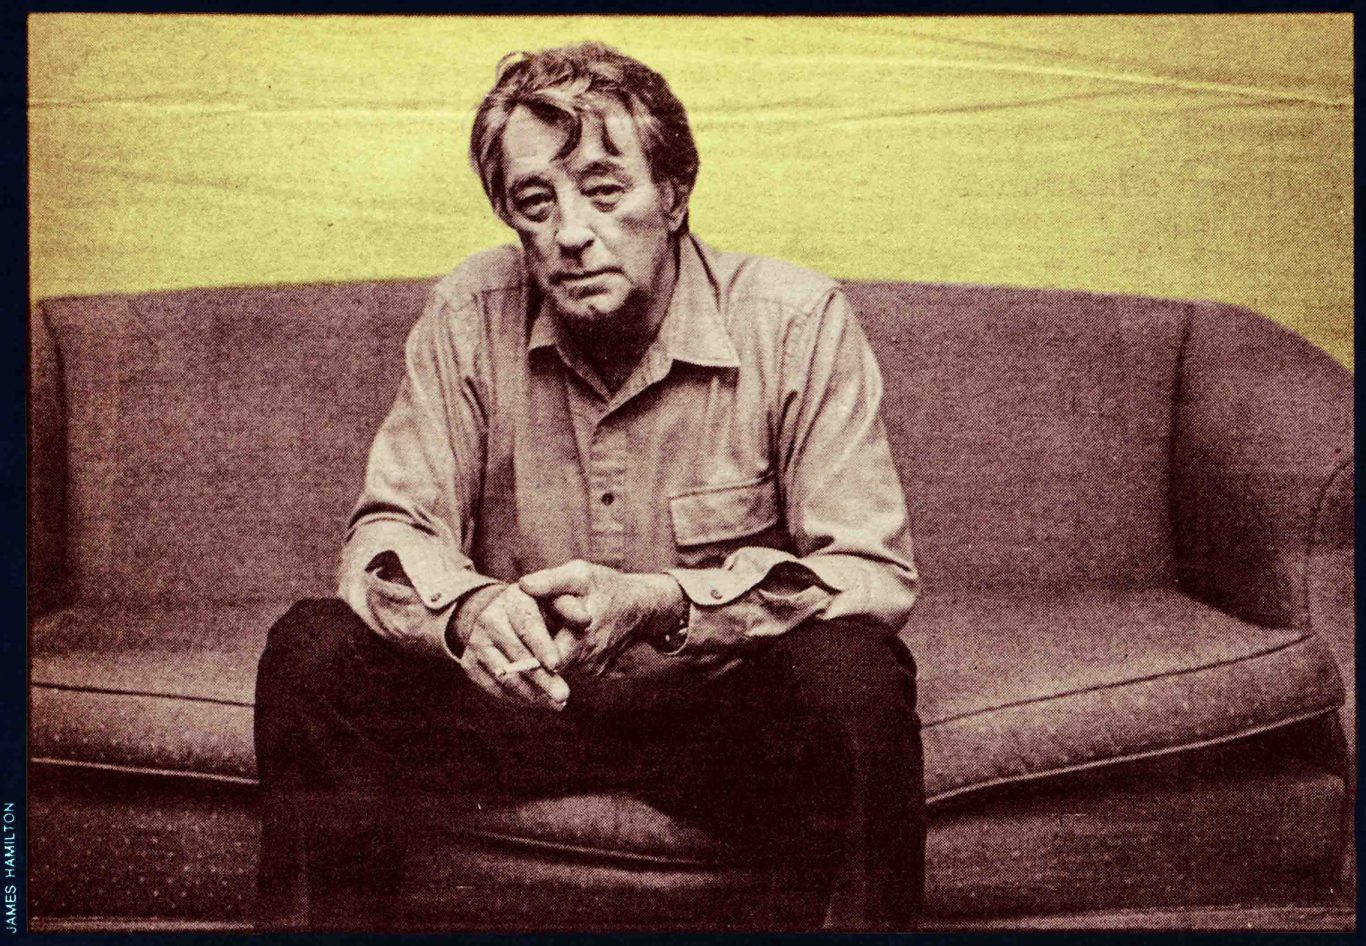 1982 Village Voice profile of Robert Mitchum by Carrie Rickey